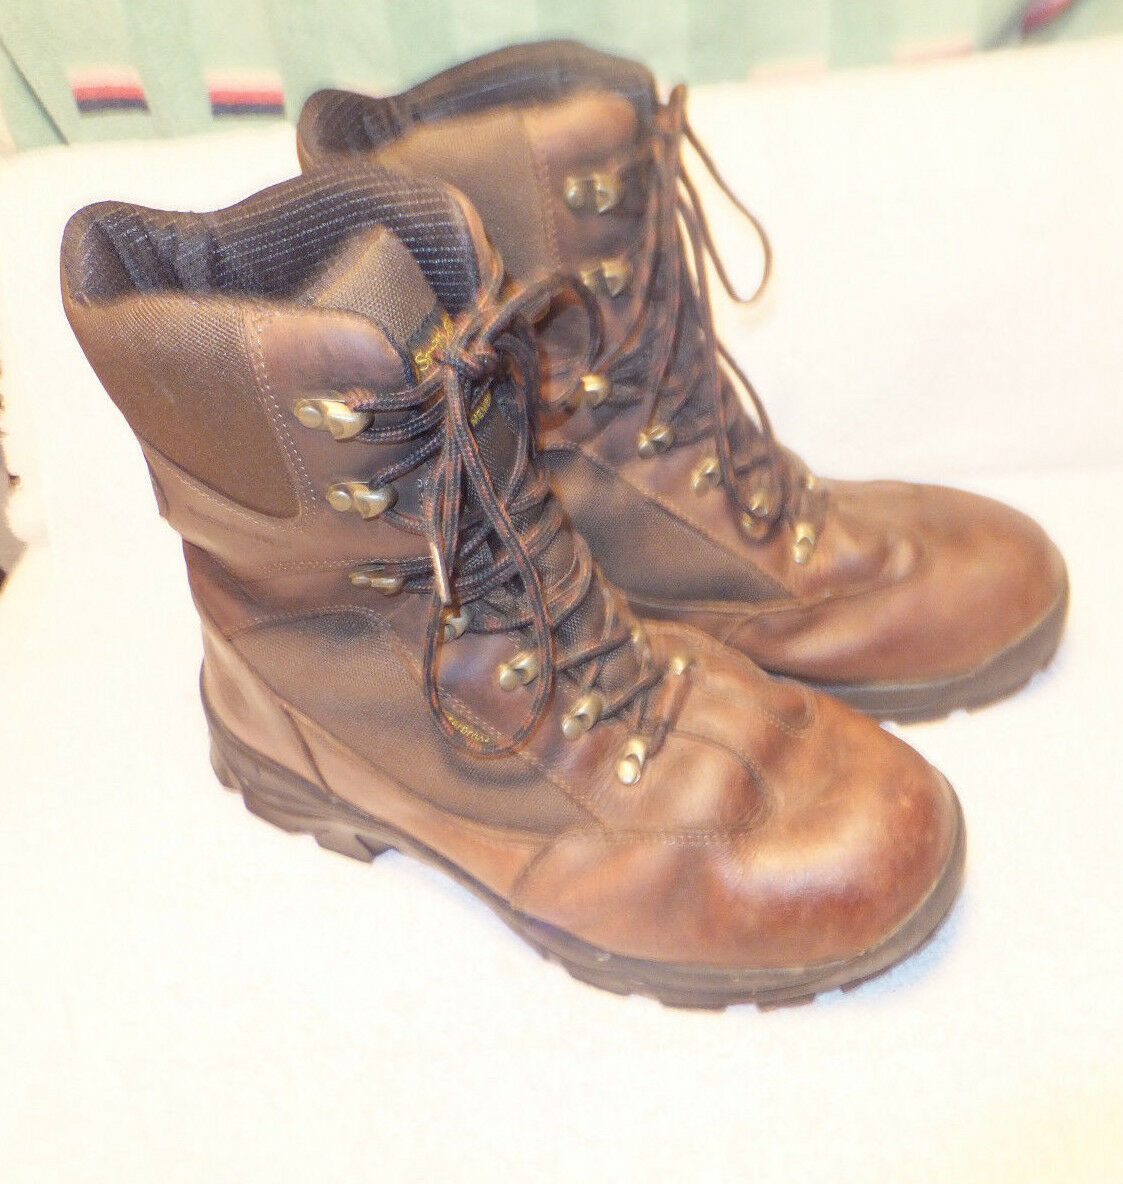 Smith & Wesson Footwear Hunting Boots Brown Leather Waterproof   Size 13M  hot